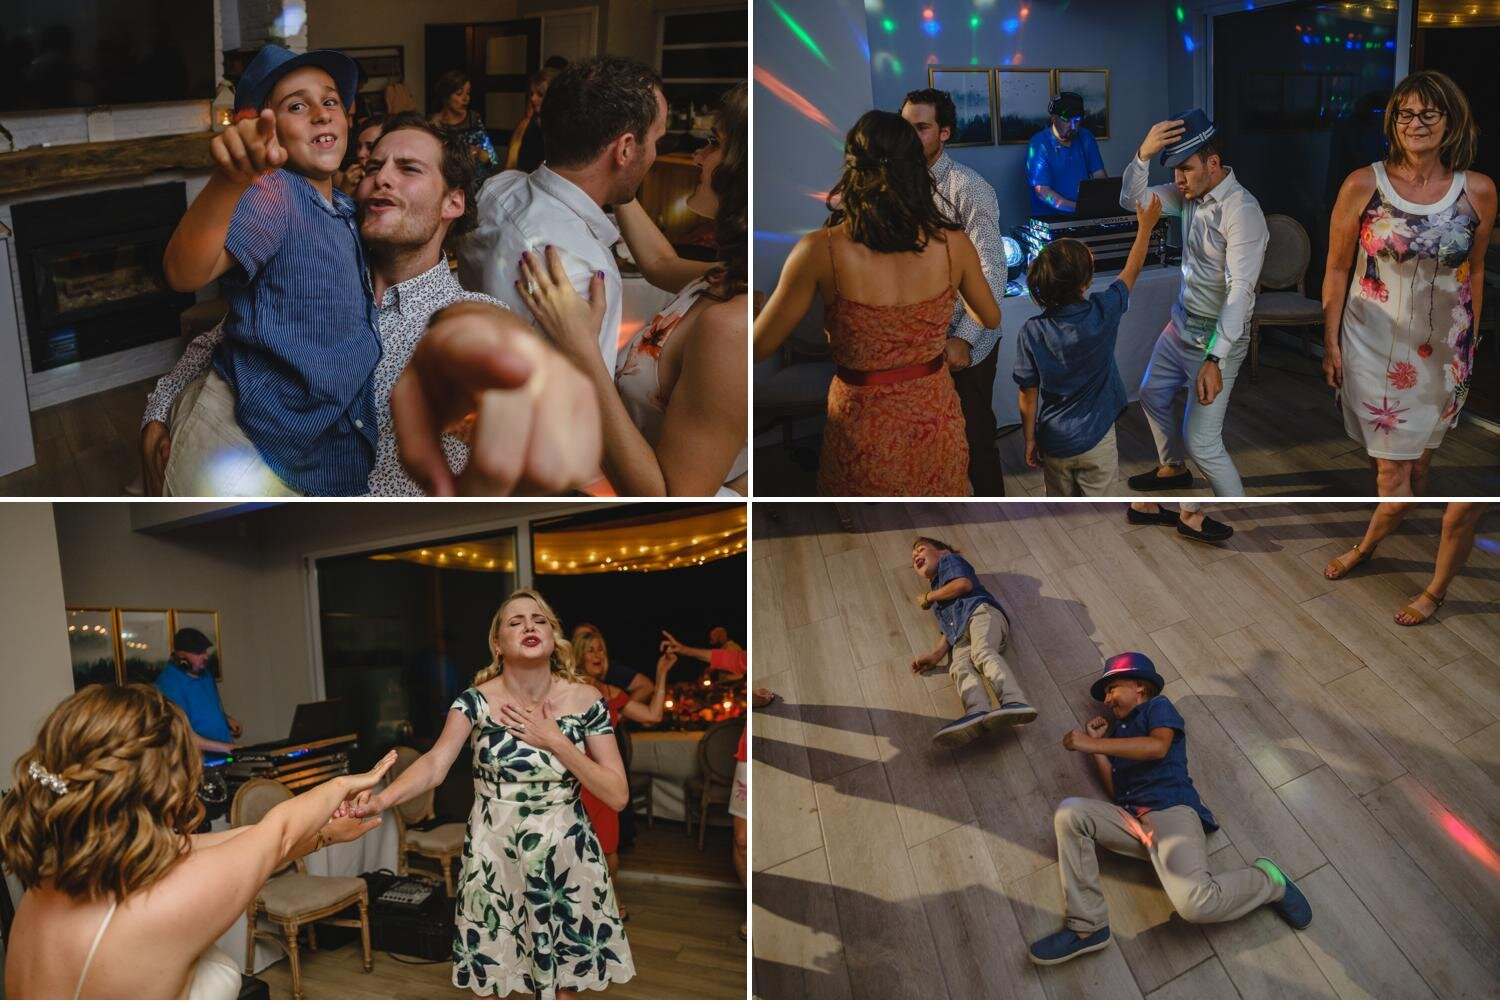 photos of dancing at a private residence wedding